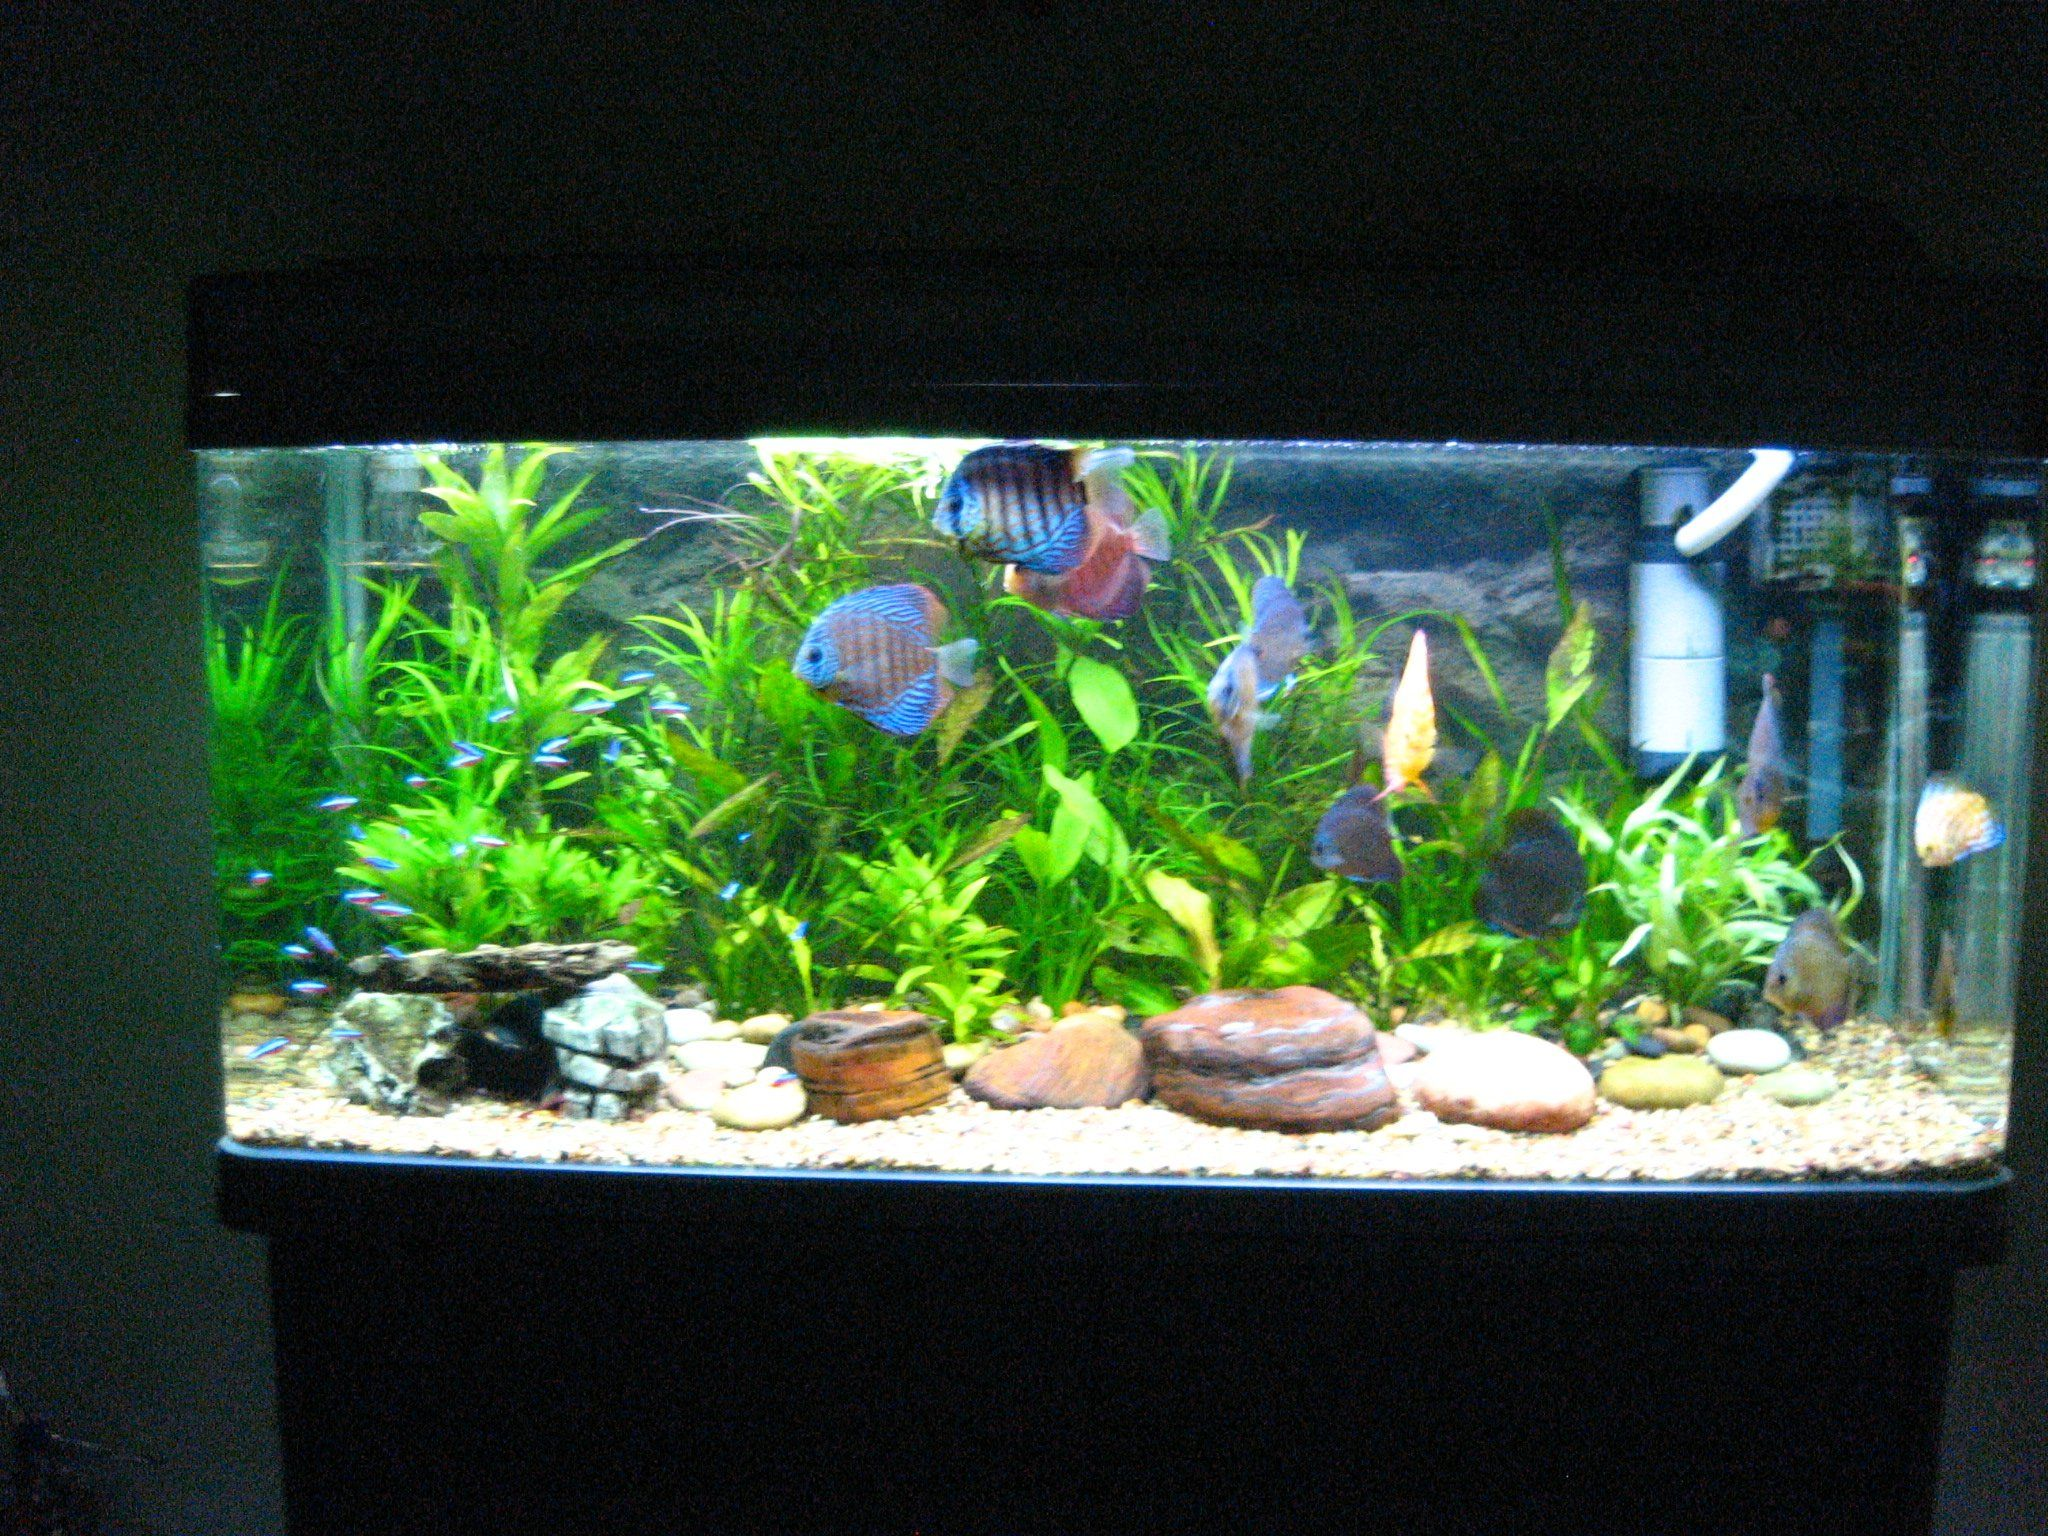 Fish for coldwater aquarium - Traquil Discuss And Neon Tetra Tank Docile Fish W Bright Colors